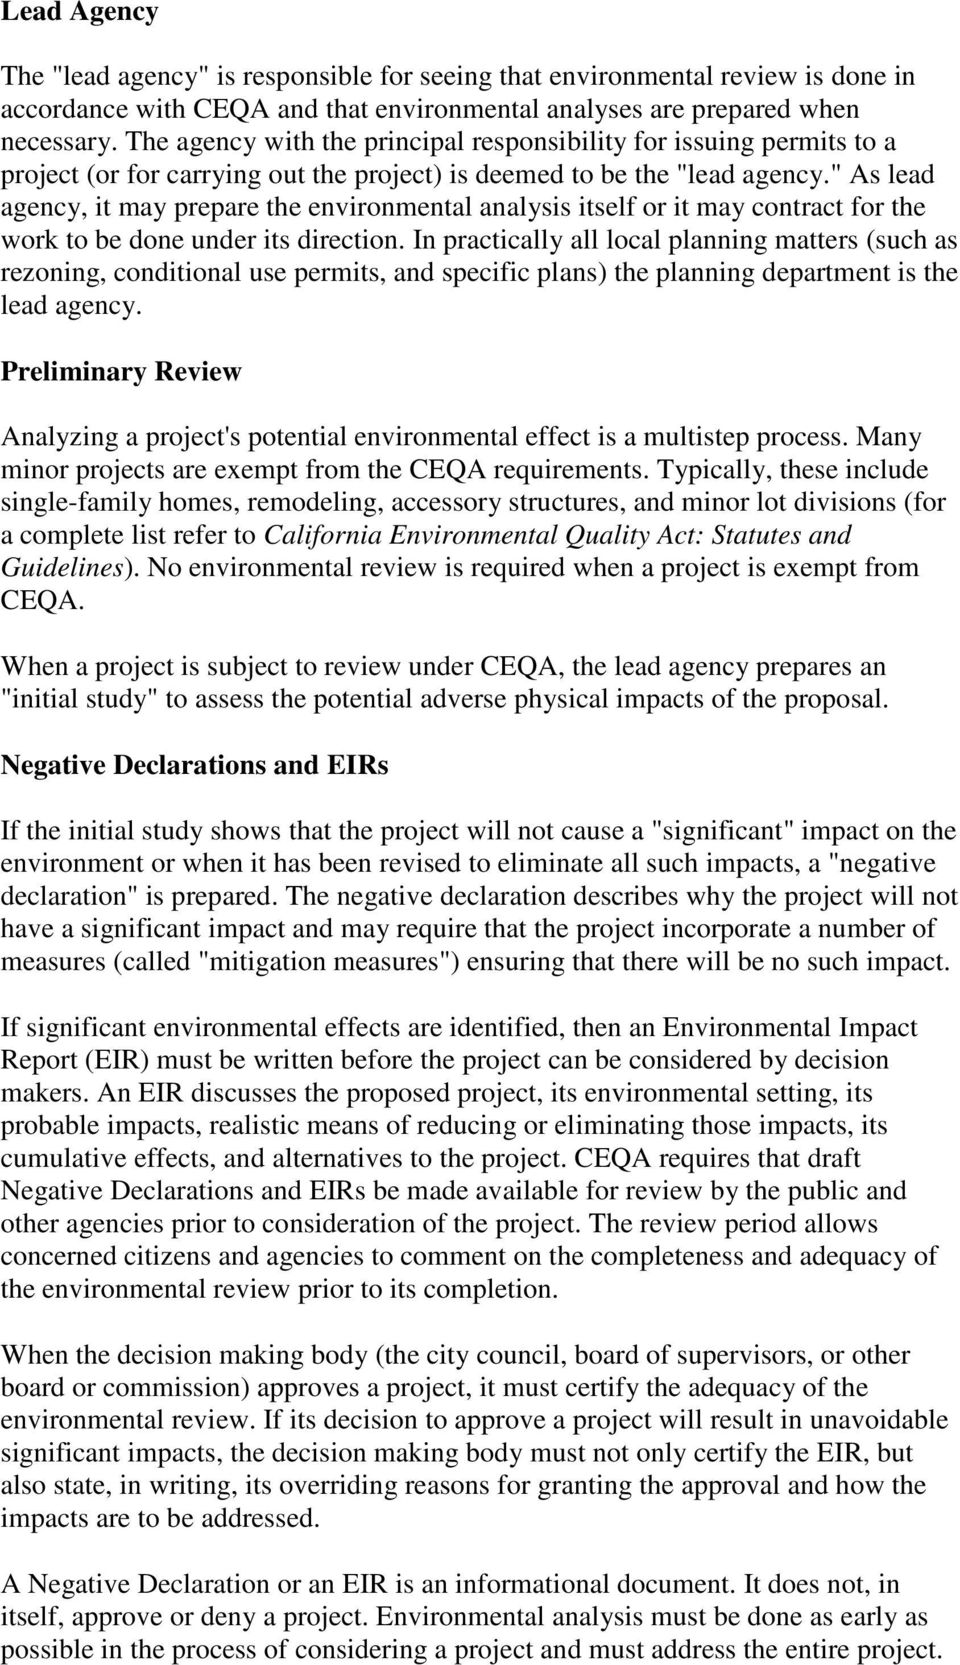 """ As lead agency, it may prepare the environmental analysis itself or it may contract for the work to be done under its direction."